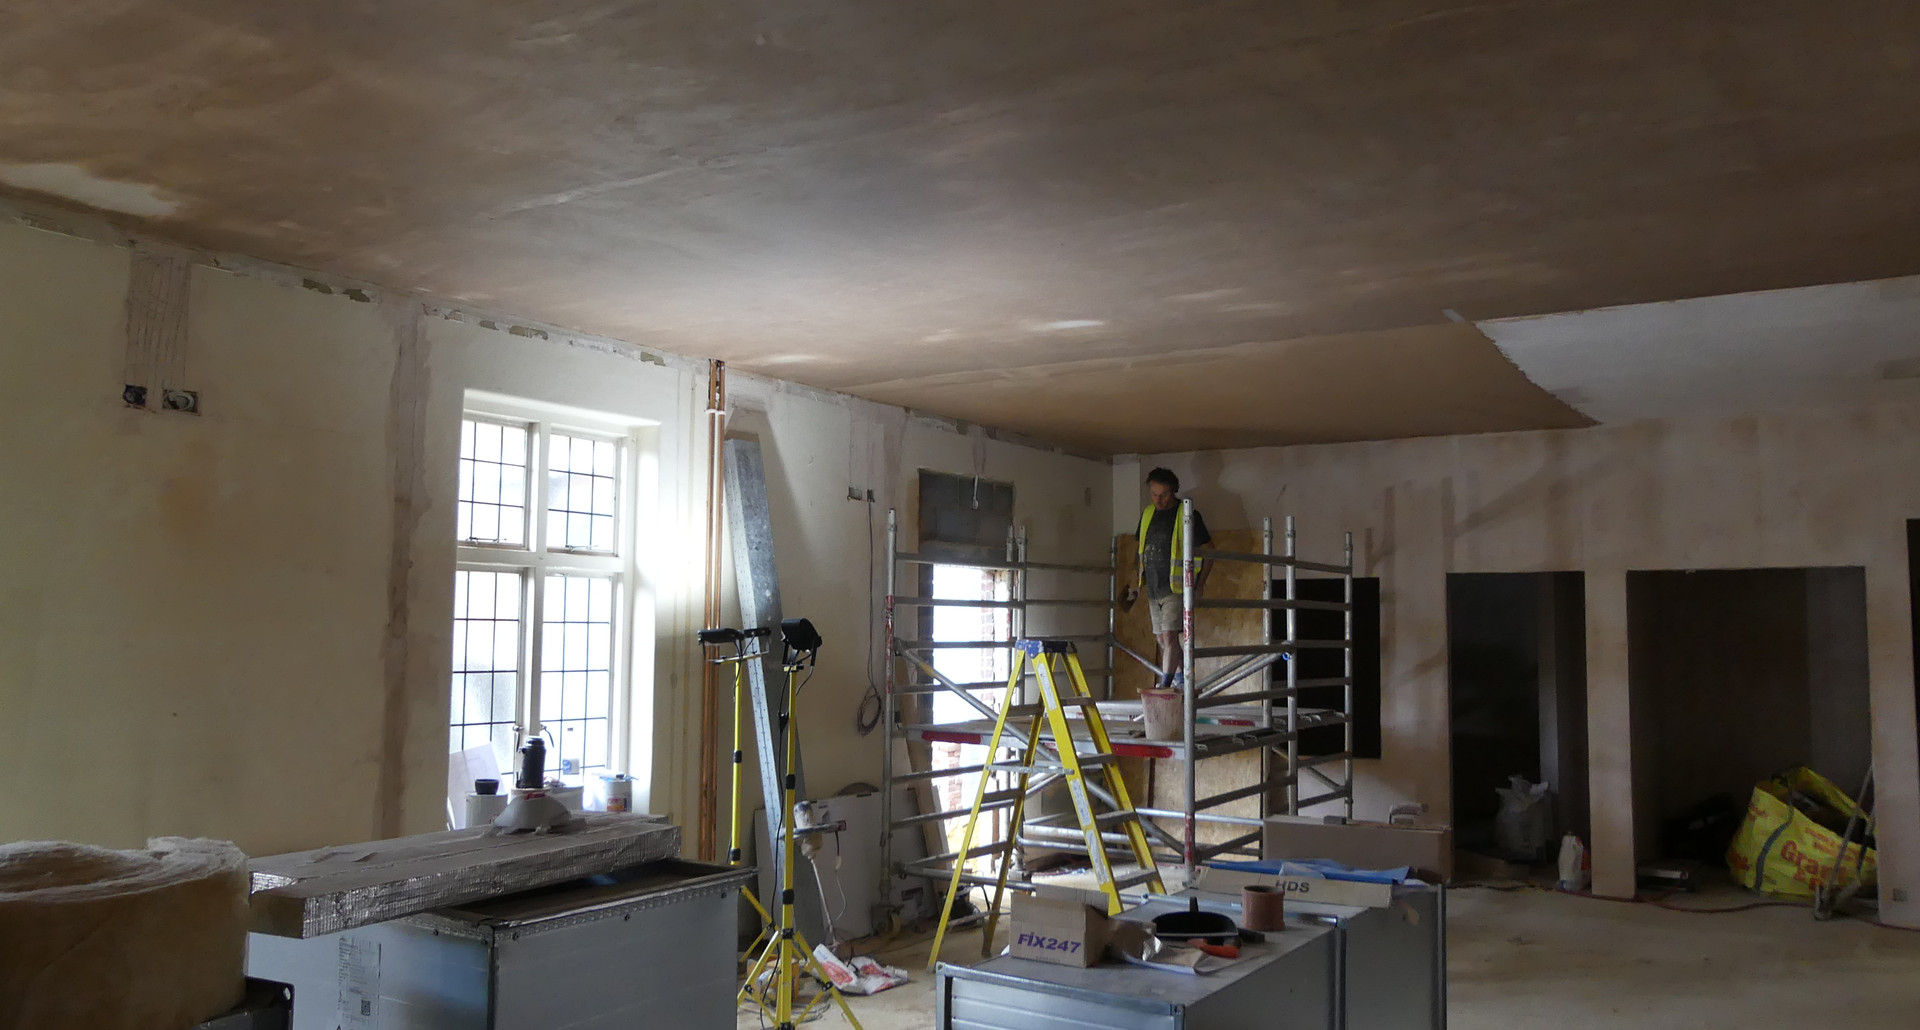 New hall being plastered, looking towards the back